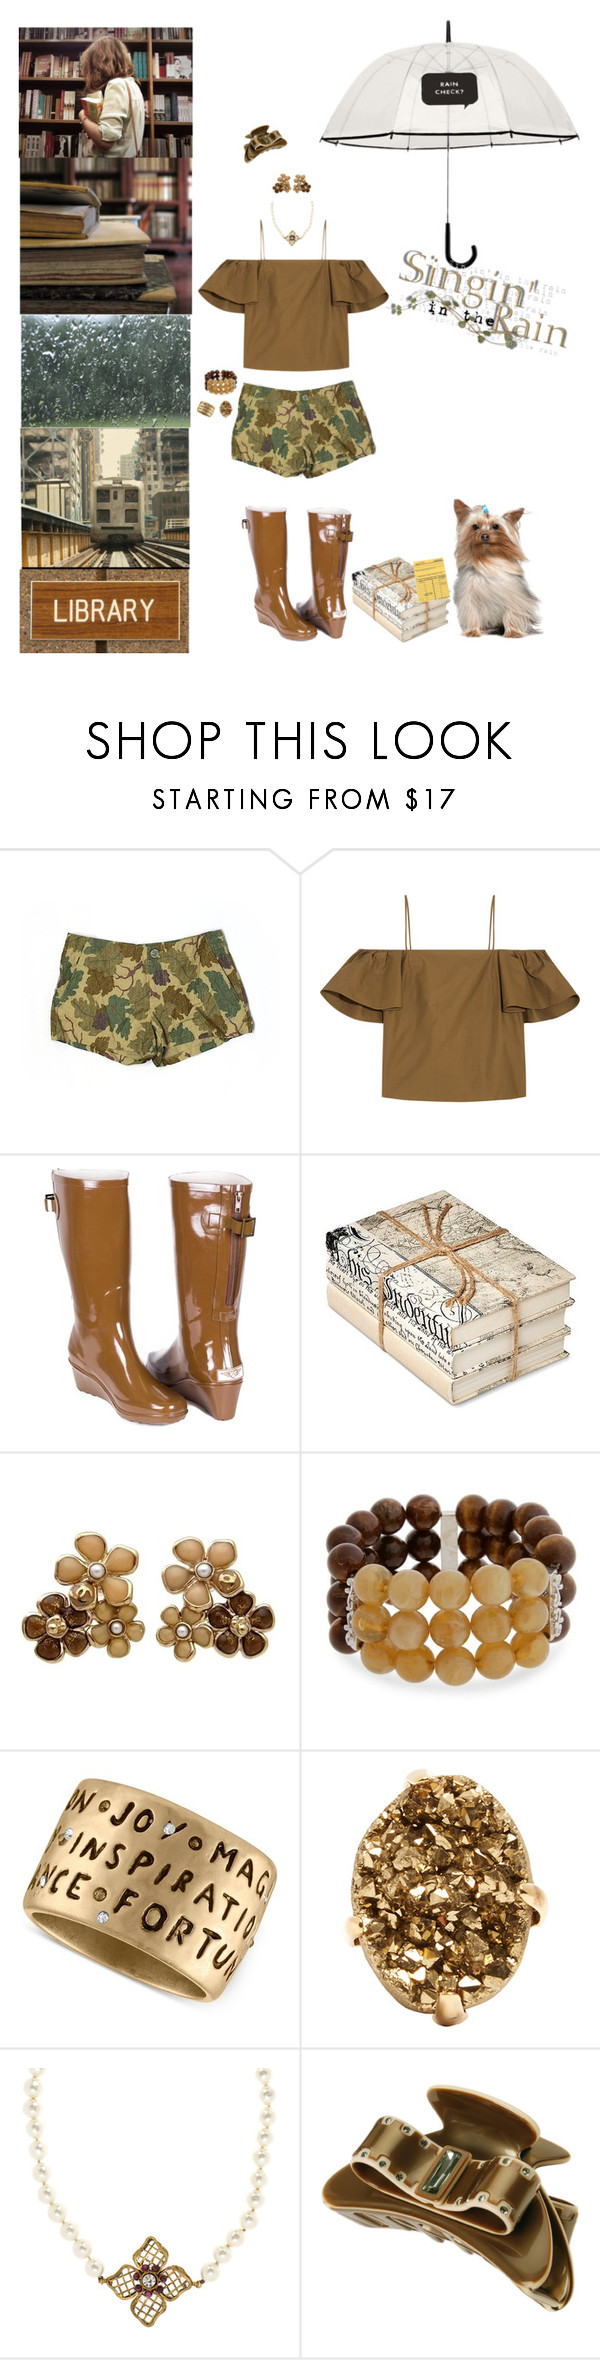 """""""Rainy Day Reads"""" by blackmagicmomma ❤ liked on Polyvore featuring NIKE, Fendi, Forever, Kate Spade, GO Home Ltd., Chanel, Erica Lyons, Rachel Rachel Roy and L. Erickson"""